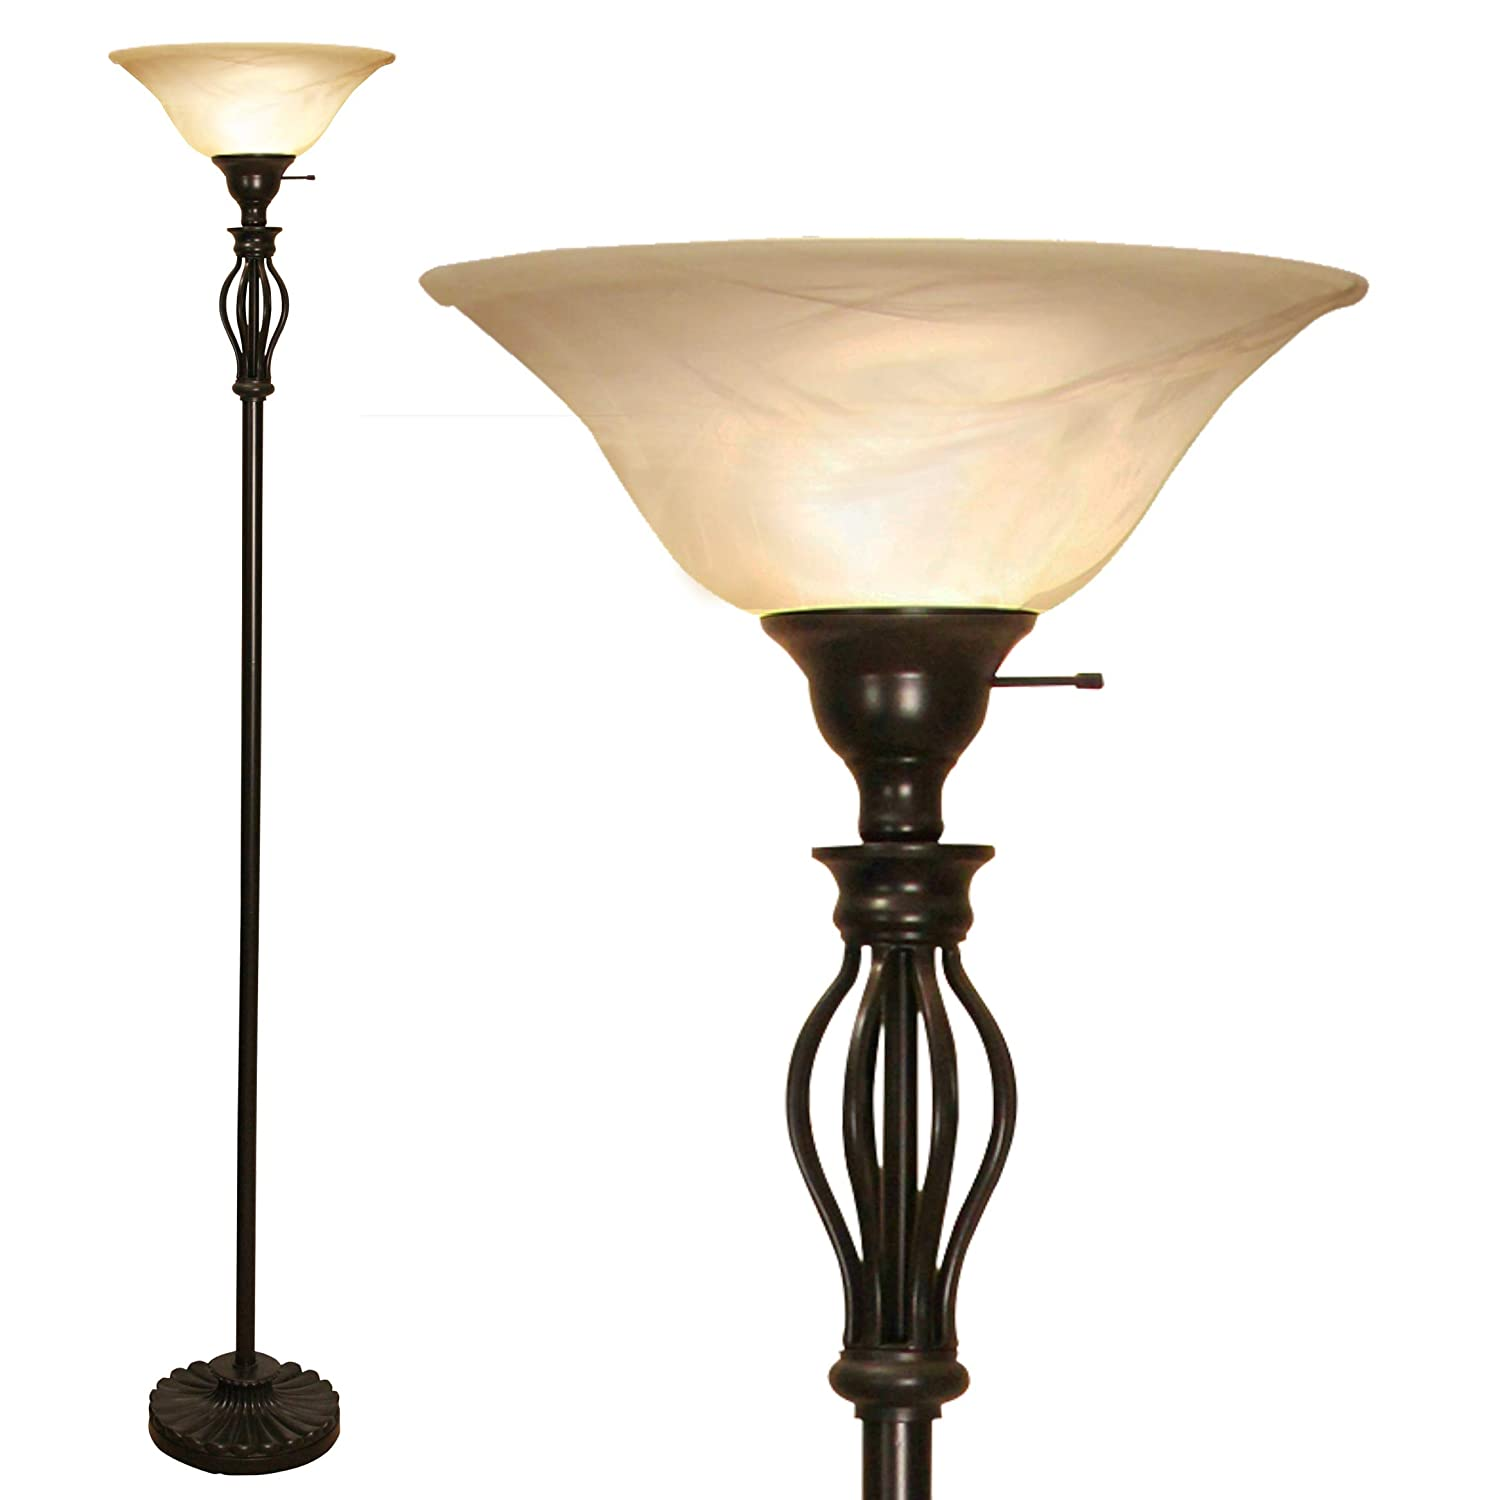 "Light Accents Bronze Floor Lamp - Traditional Iron Scrollwork Standing Bright Pole Light with Alabaster Glass Bowl Shade – Torchiere 70"" Tall- Bronze"